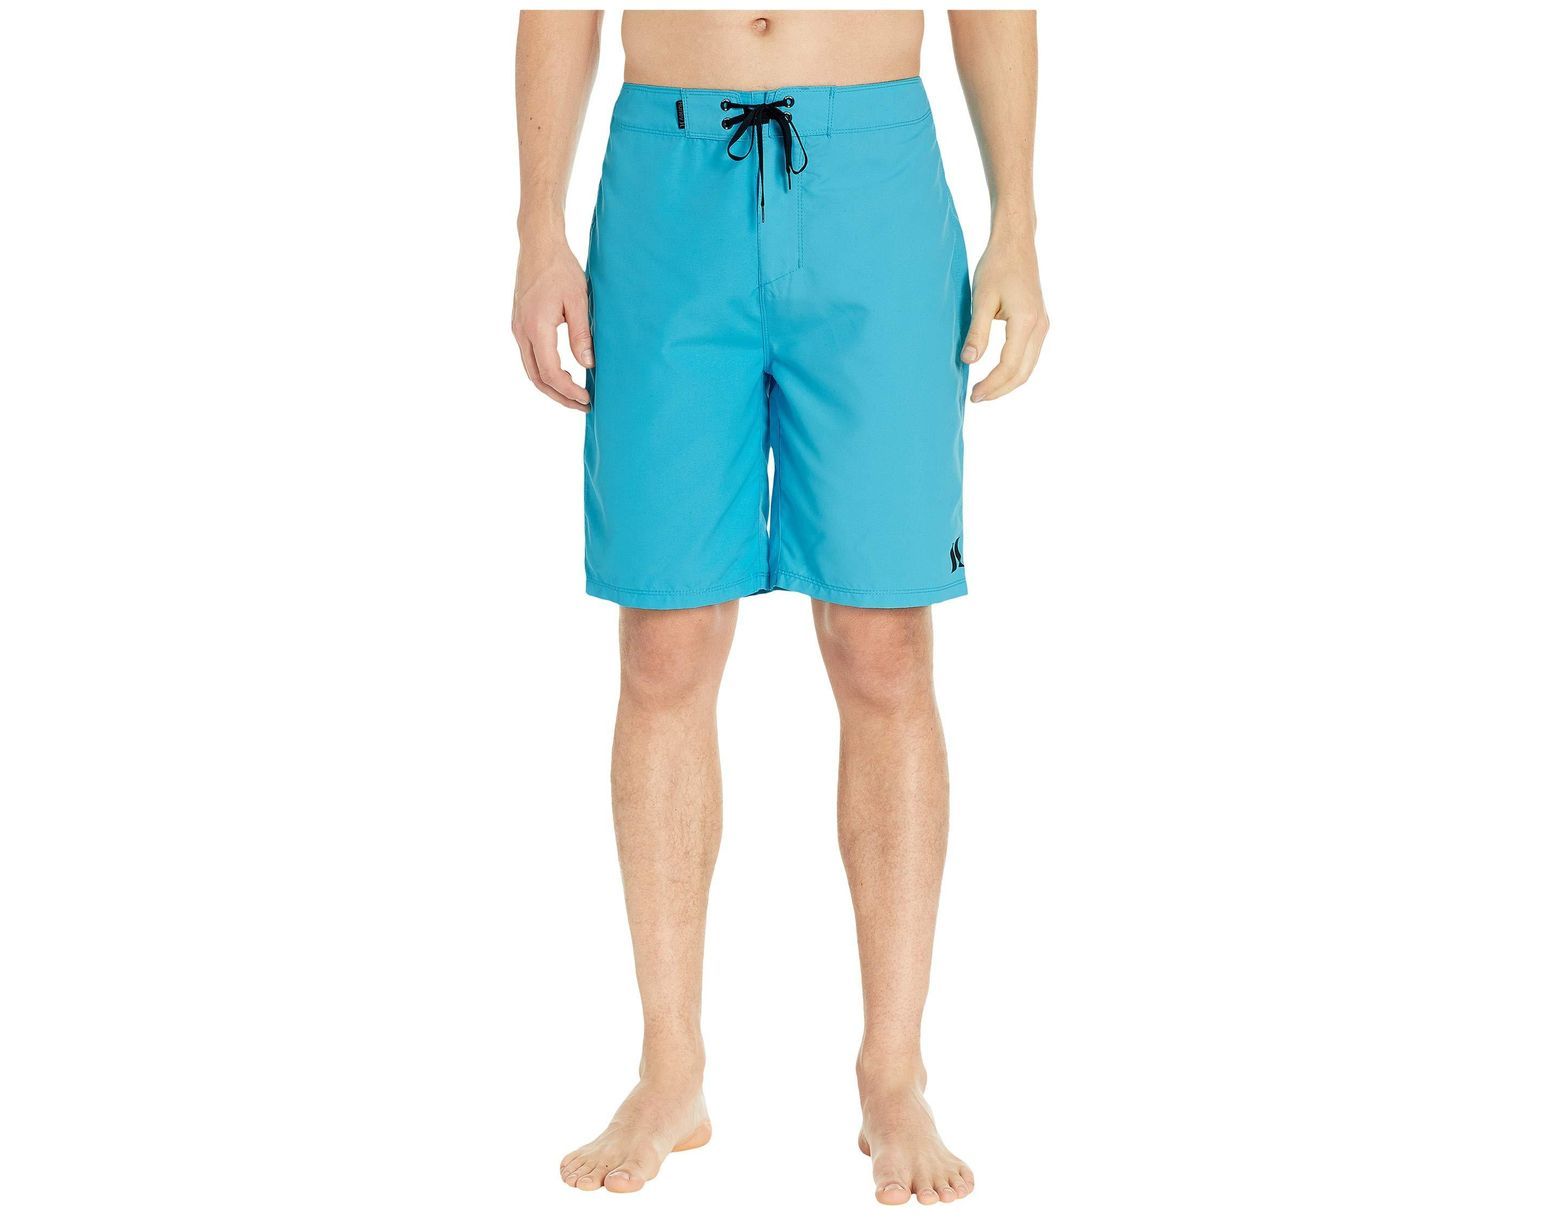 40f5871553 Blue One Only 2.0 21 Boardshorts (noise Aqua) Men's Swimwear